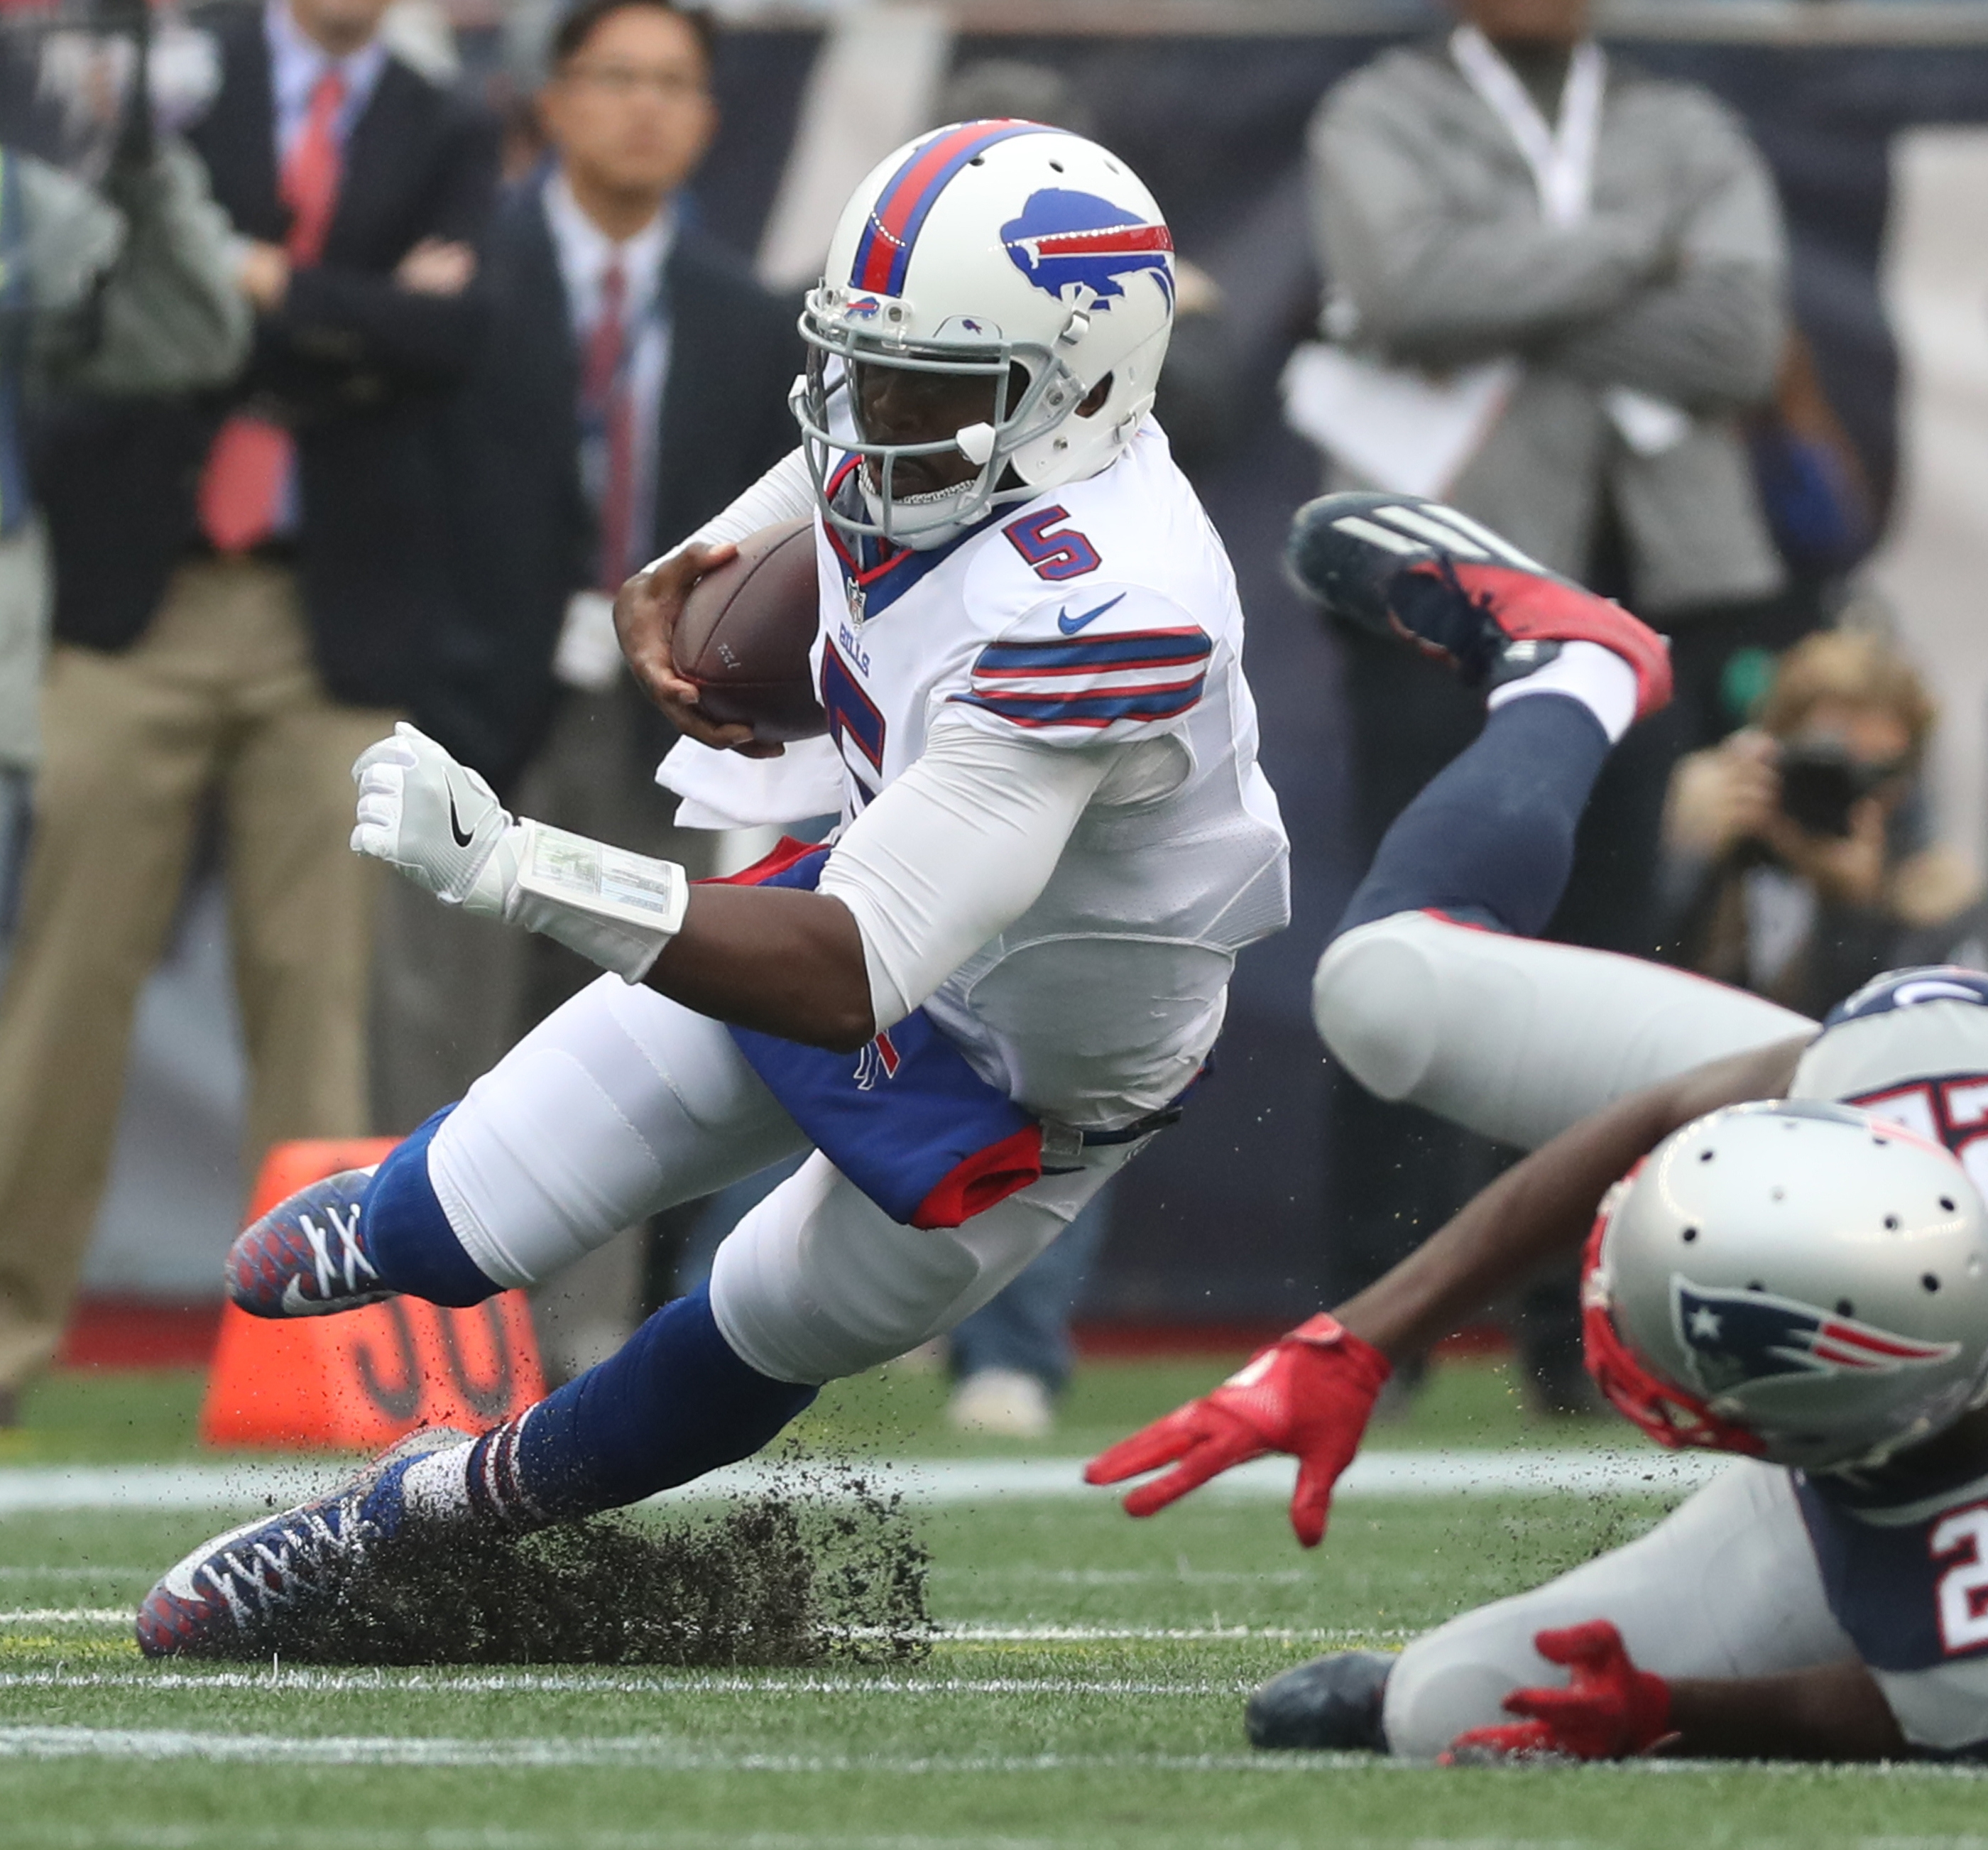 Buffalo Bills quarterback Tyrod Taylor (5) rushed for a first down against New England Patriots cornerback Justin Coleman (22) in the second quarter.